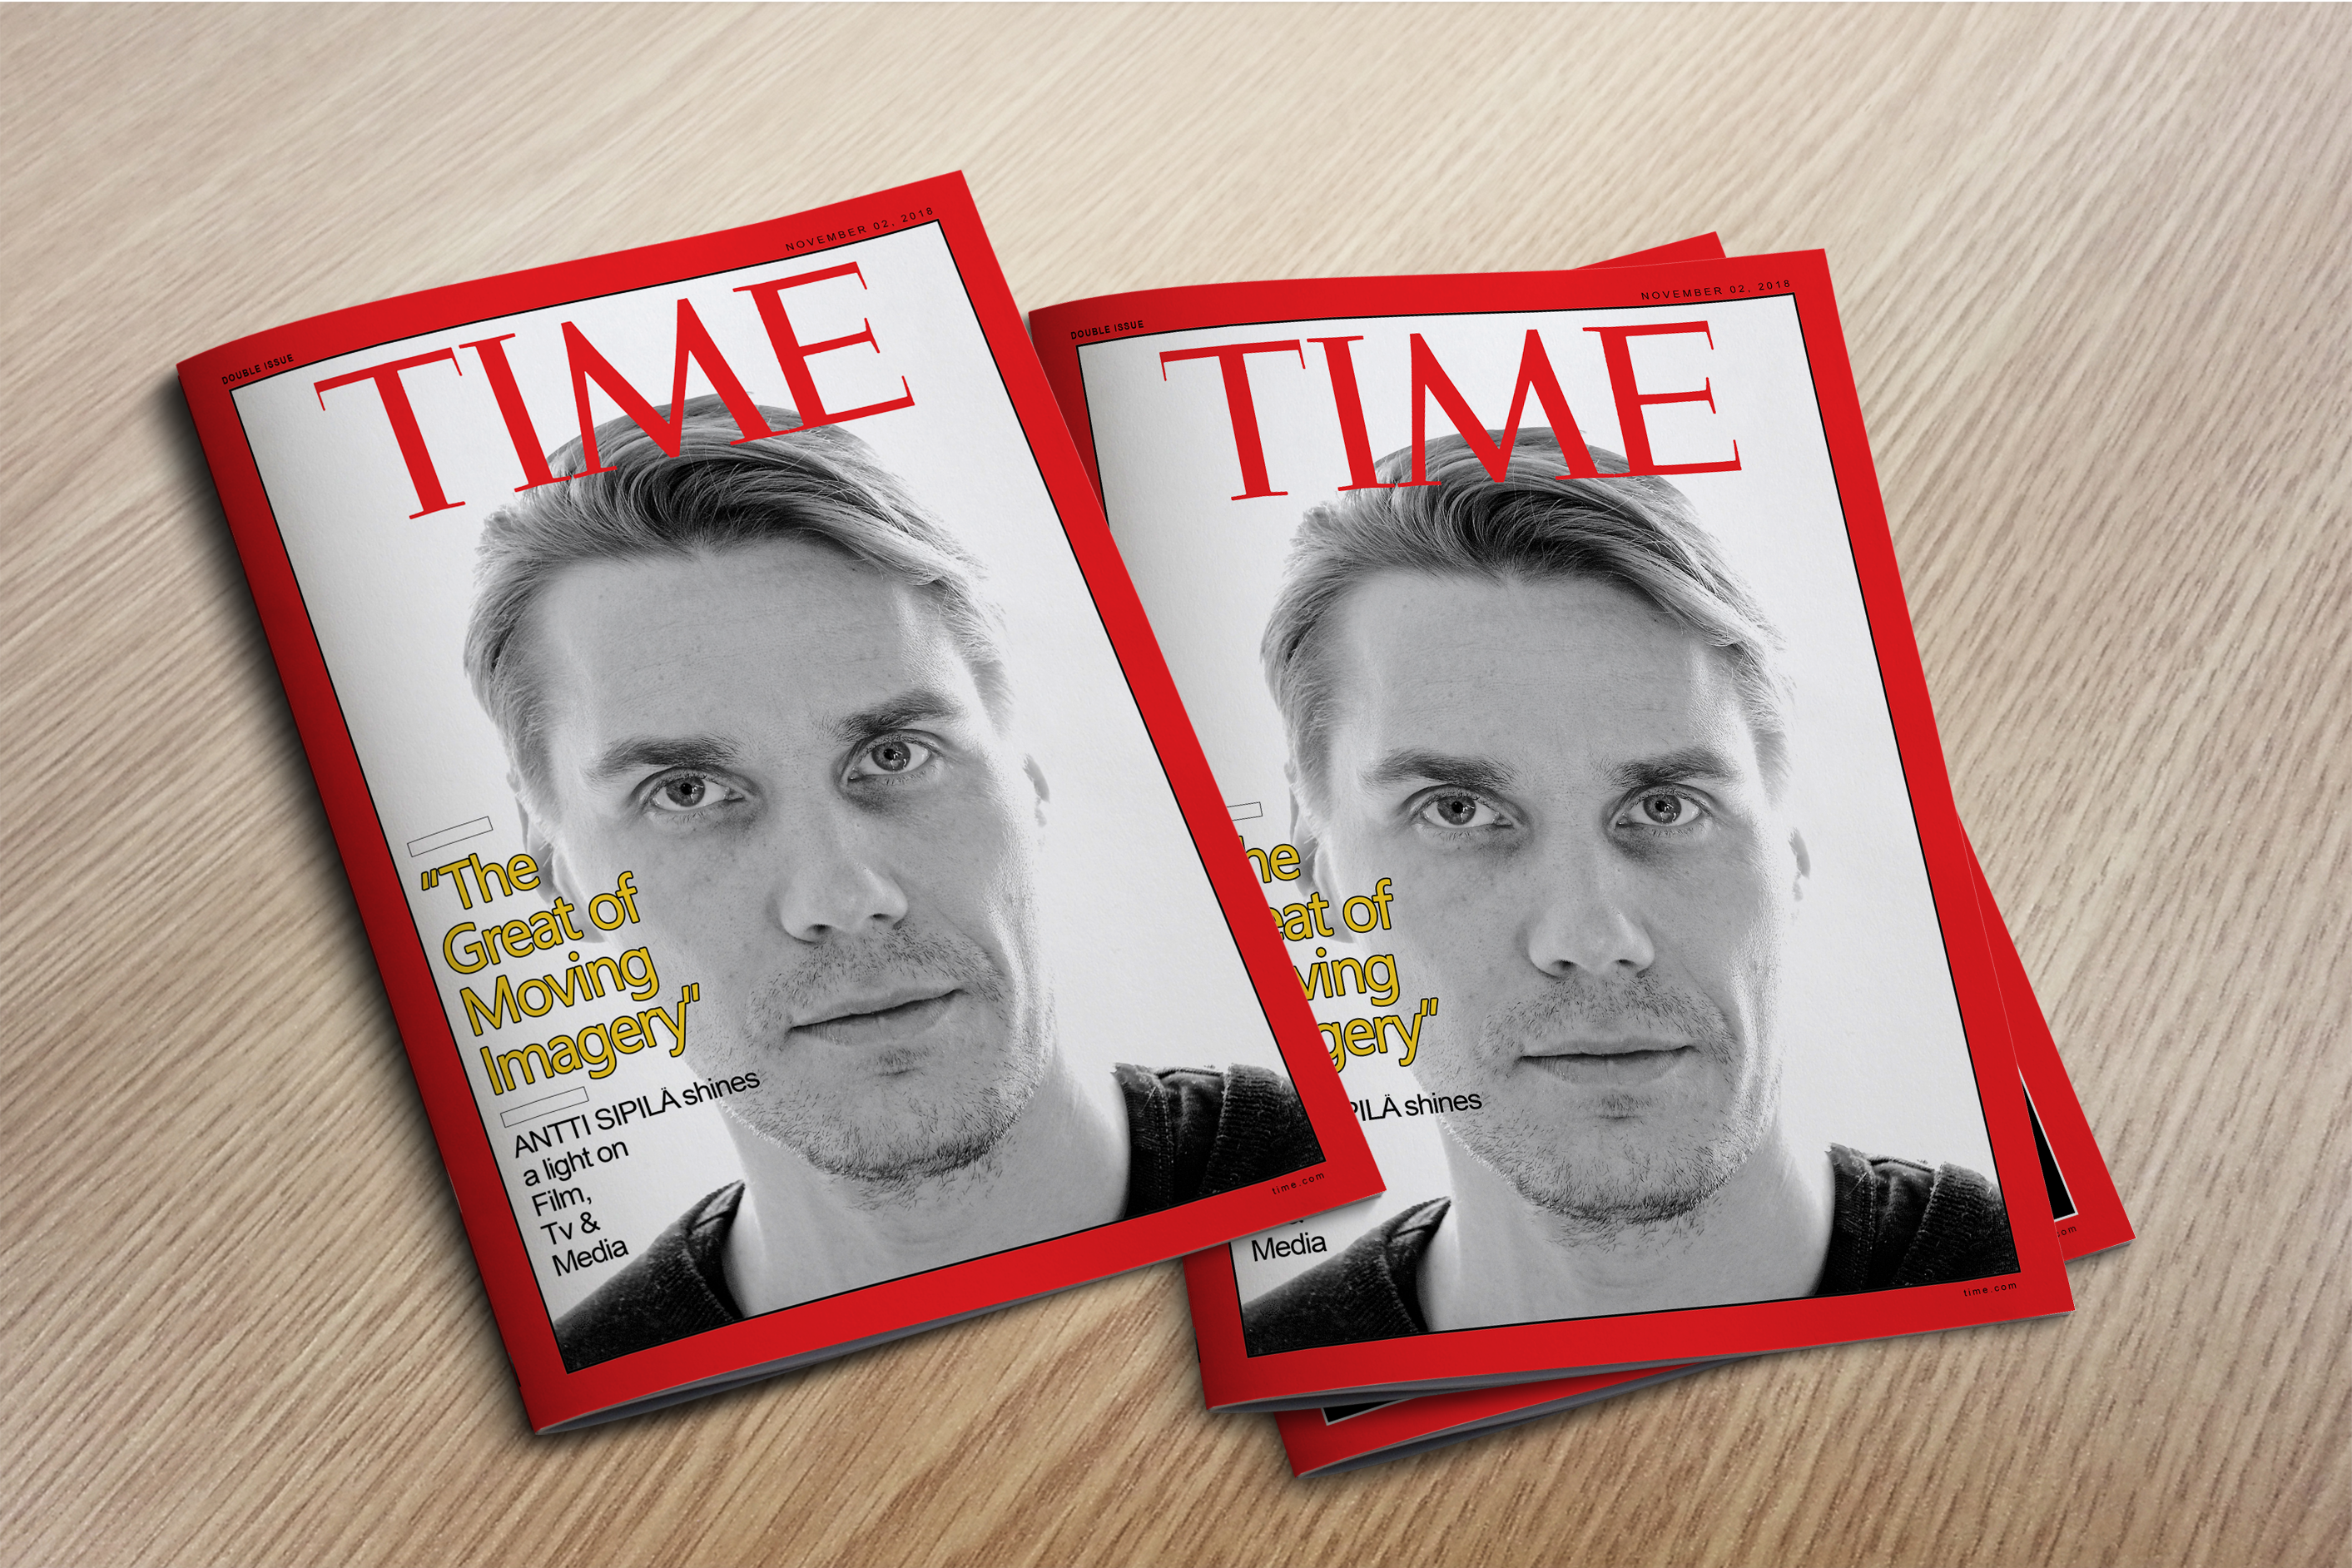 Lancodwini I Will Put Your Image In A Time Magazine Cover In 24hrs For 20 On Fiverr Com Magazine Cover Brand Presentation Time Magazine